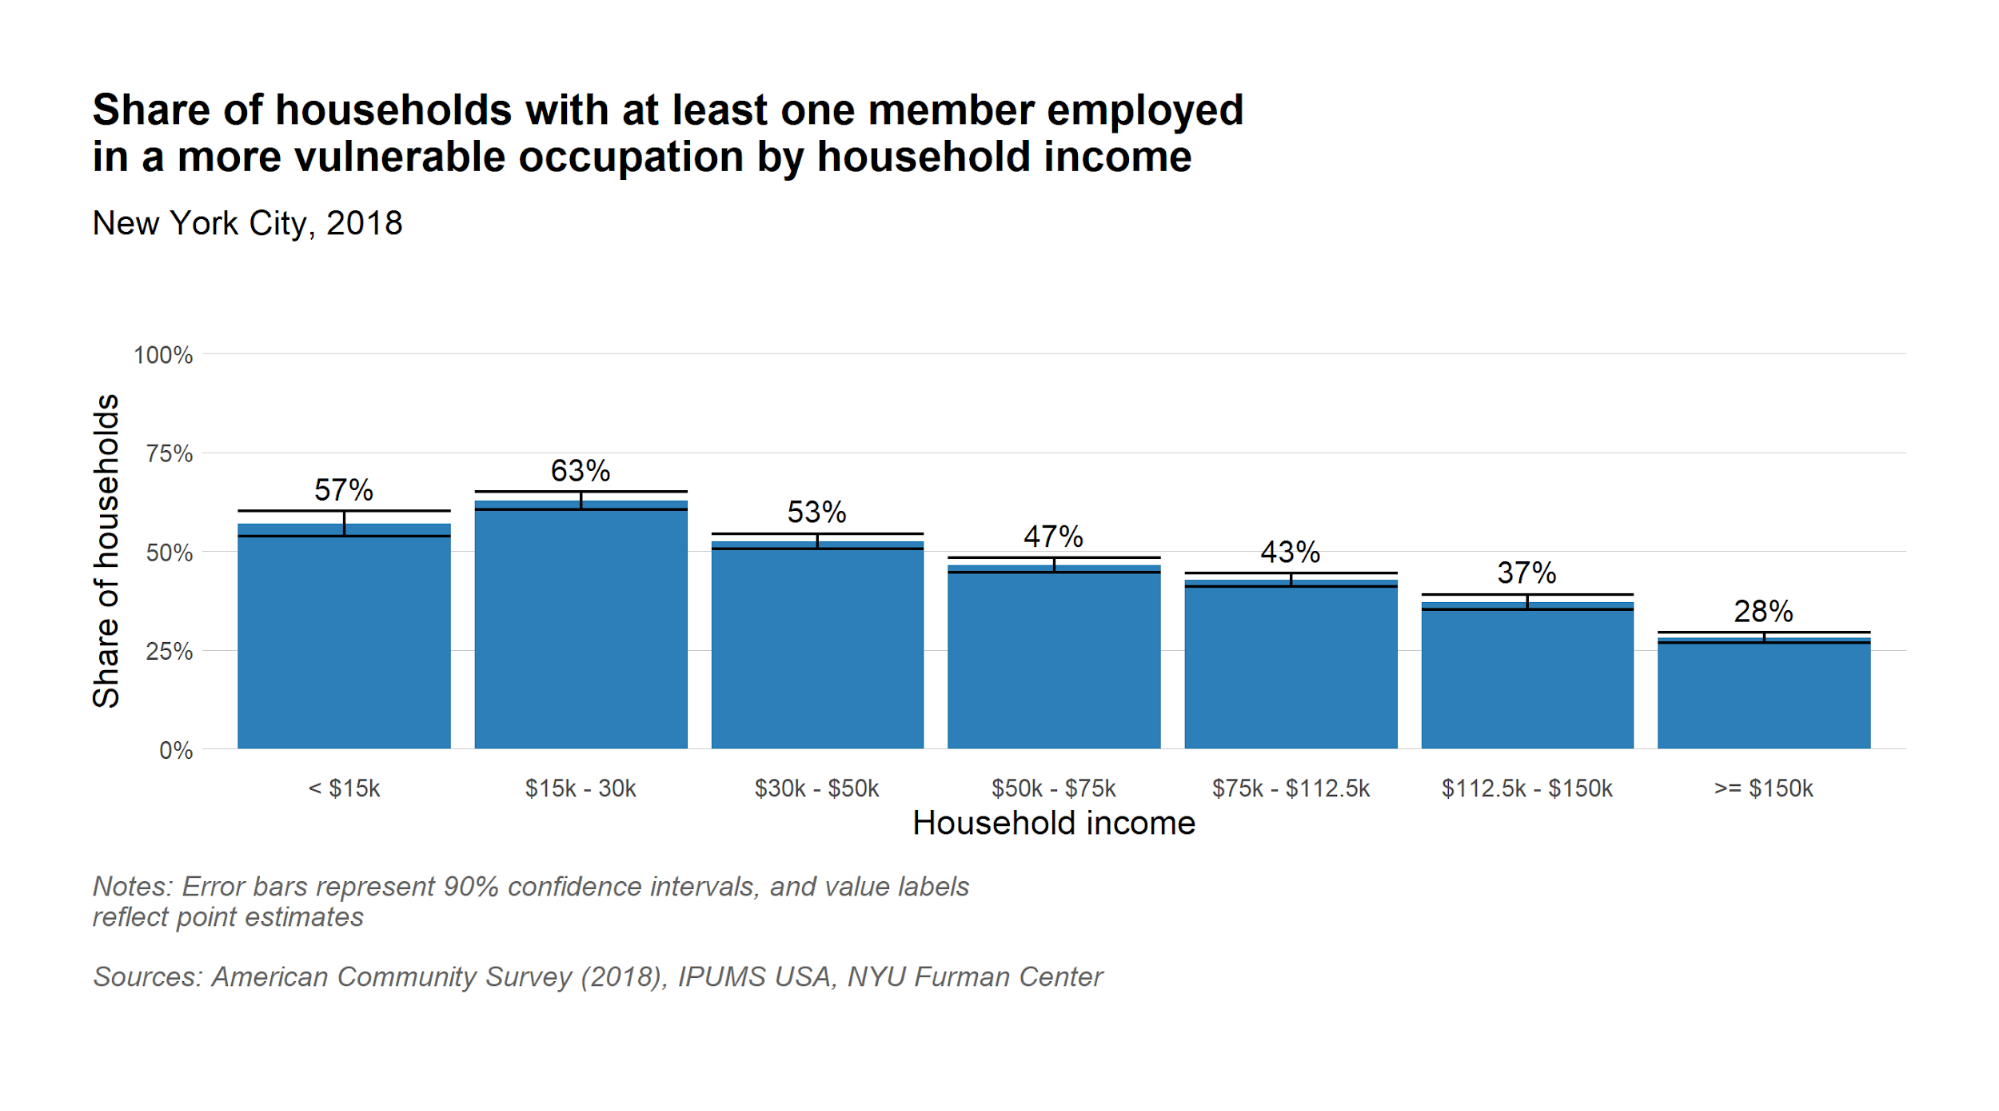 Share of households with at least one member in vulnerable occupation by household income